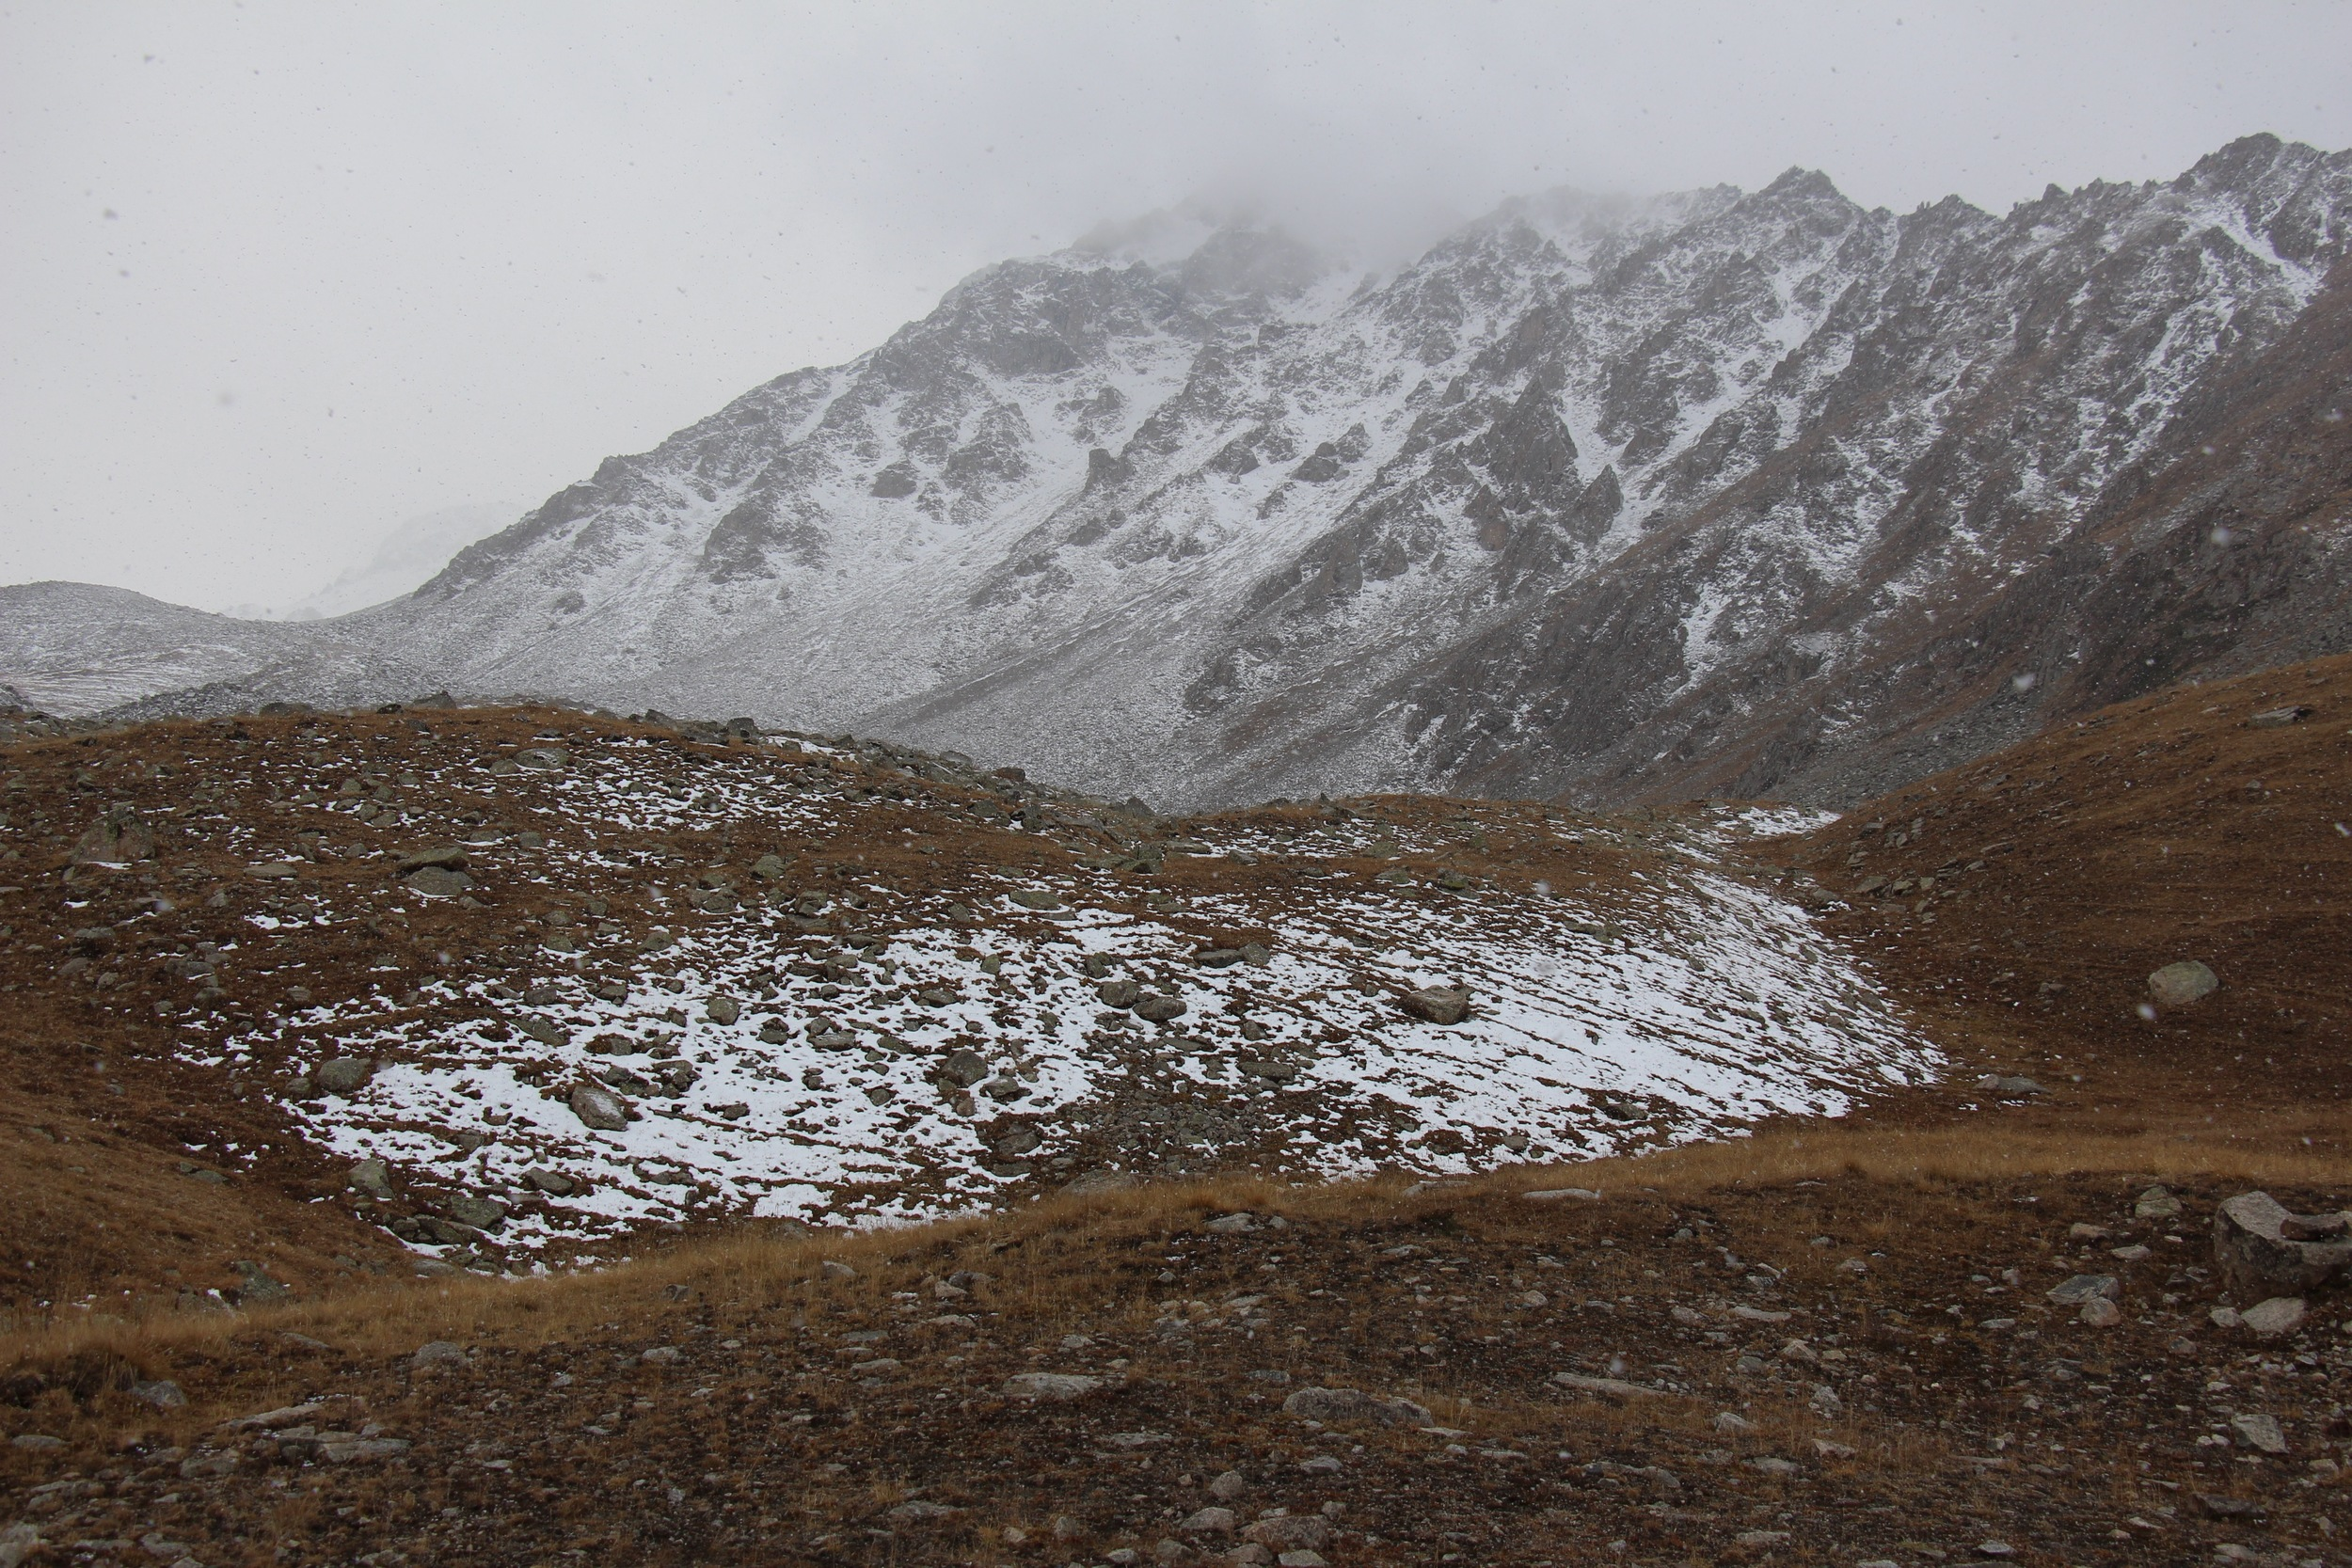 Ili Alatauski National Park in the Tien Shan Mountains